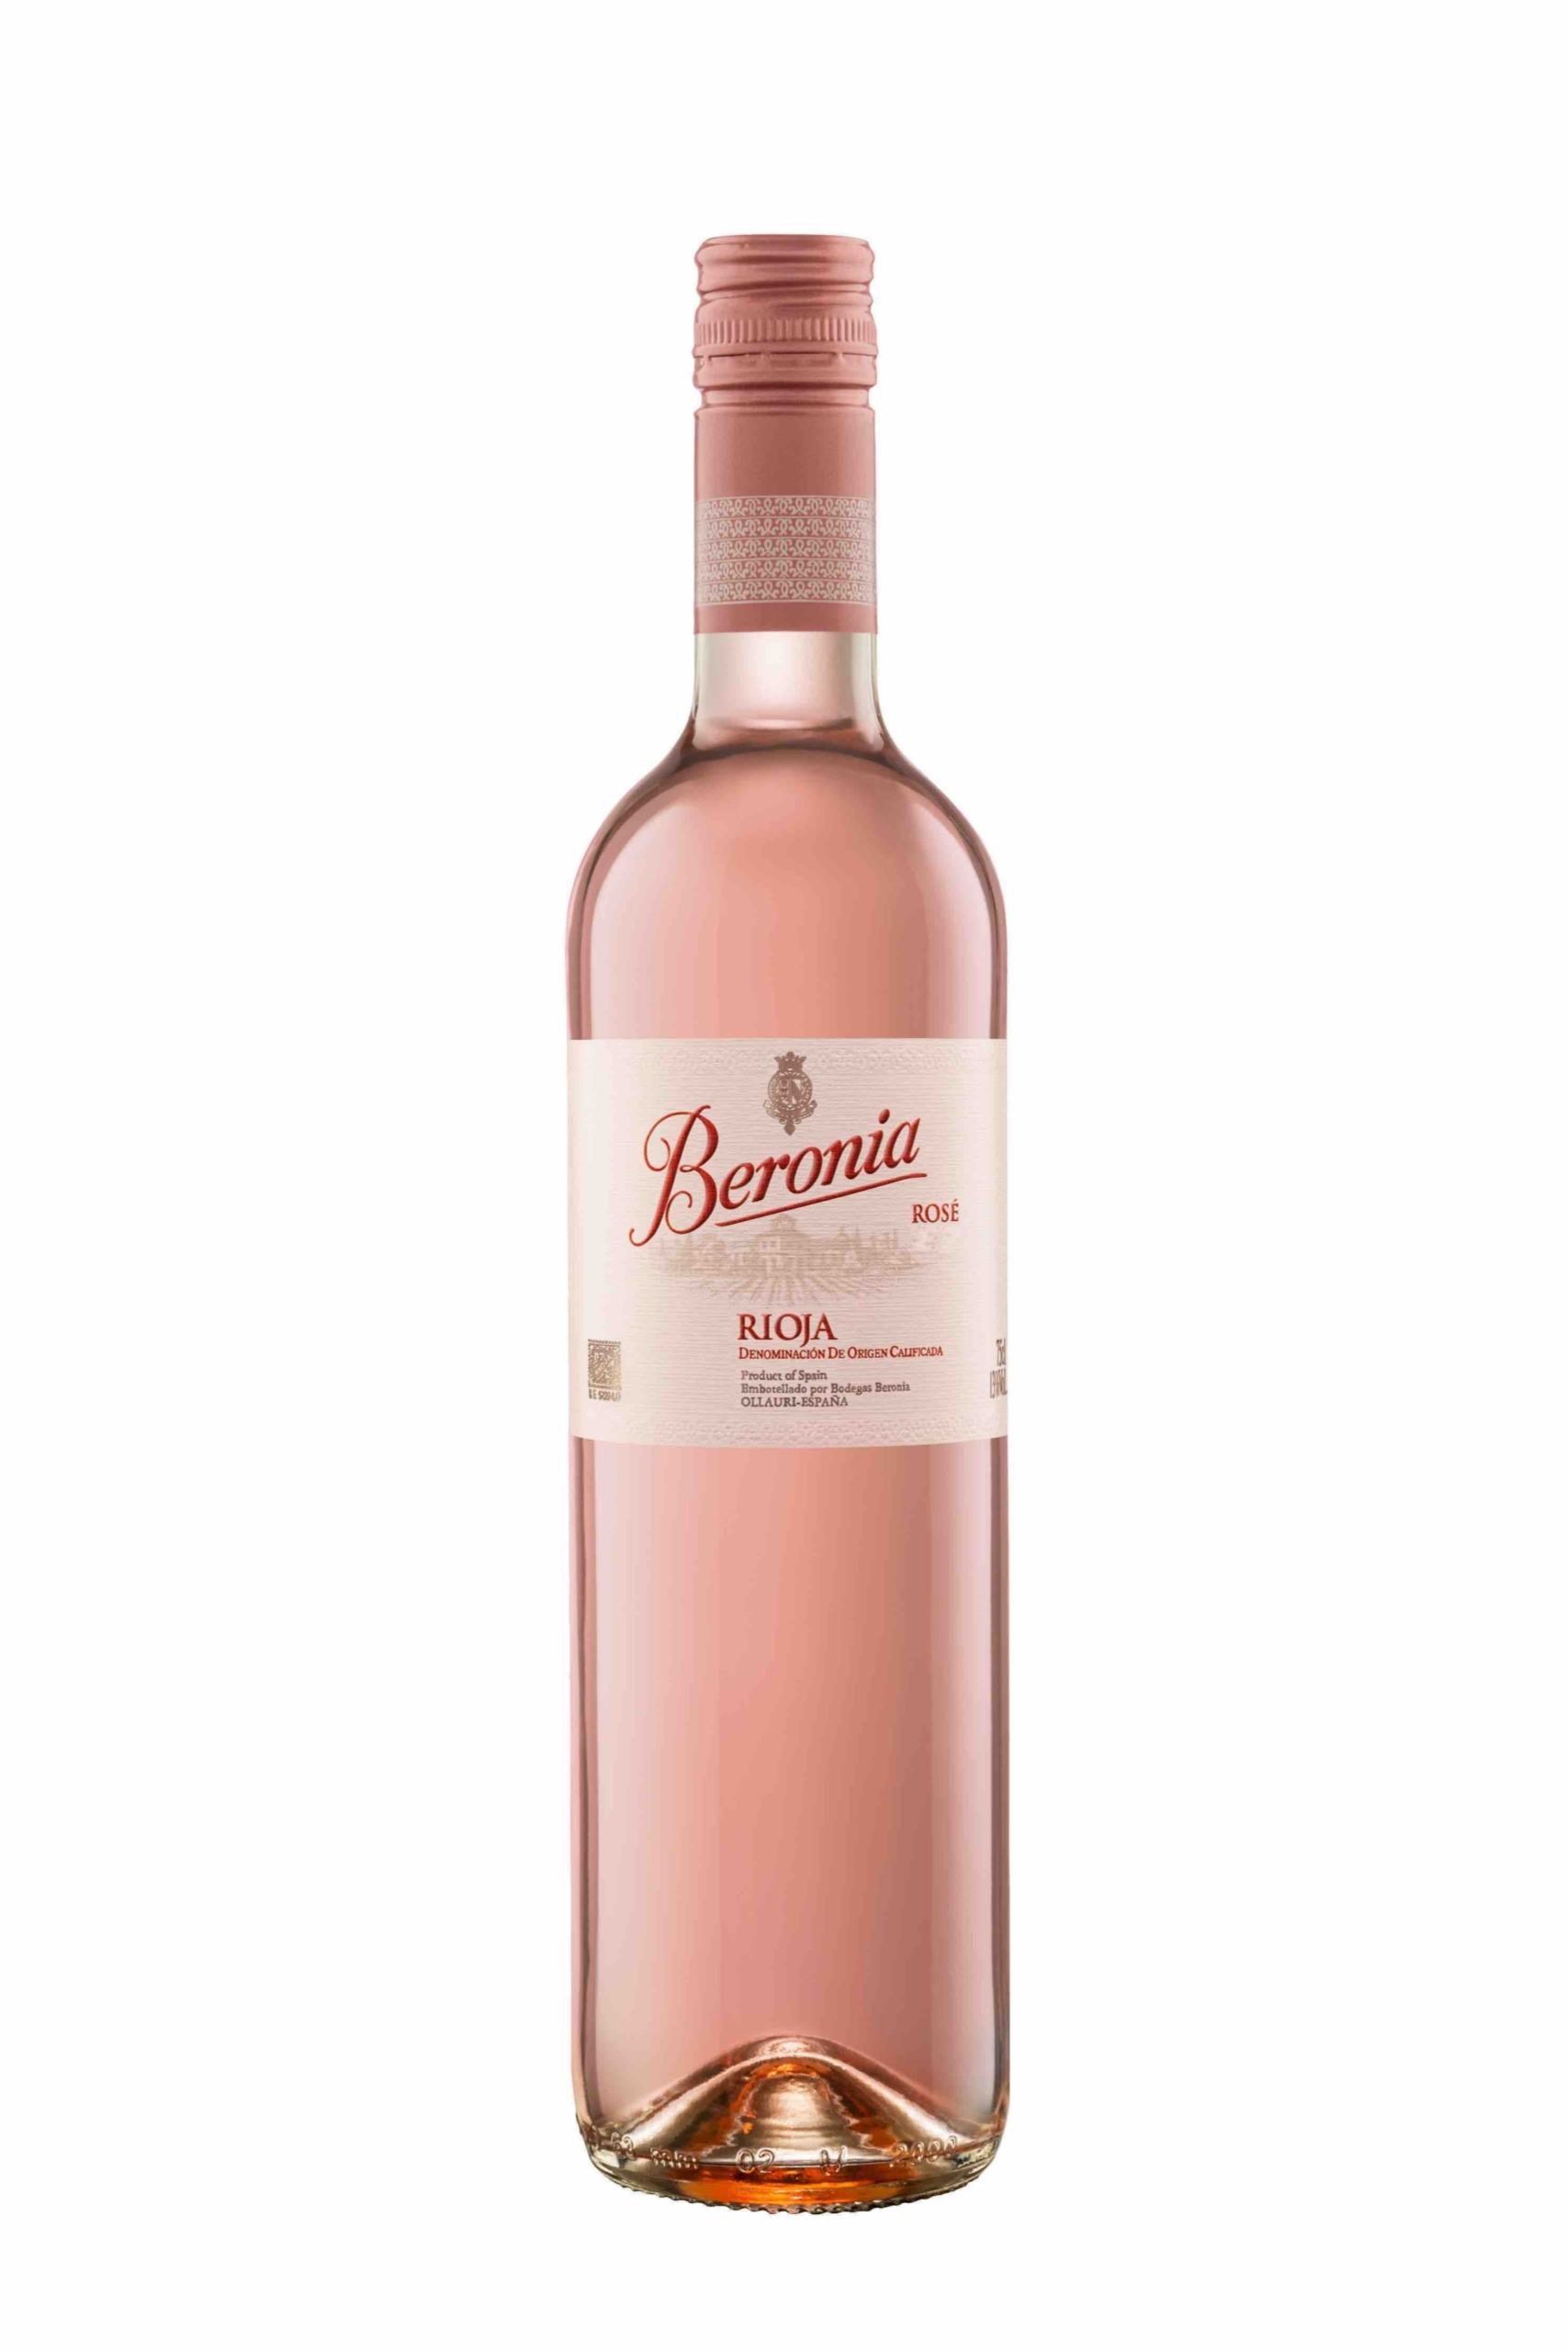 These Are The Best Rosé Wine Bottles To Experience Summer's Most Popular Drink